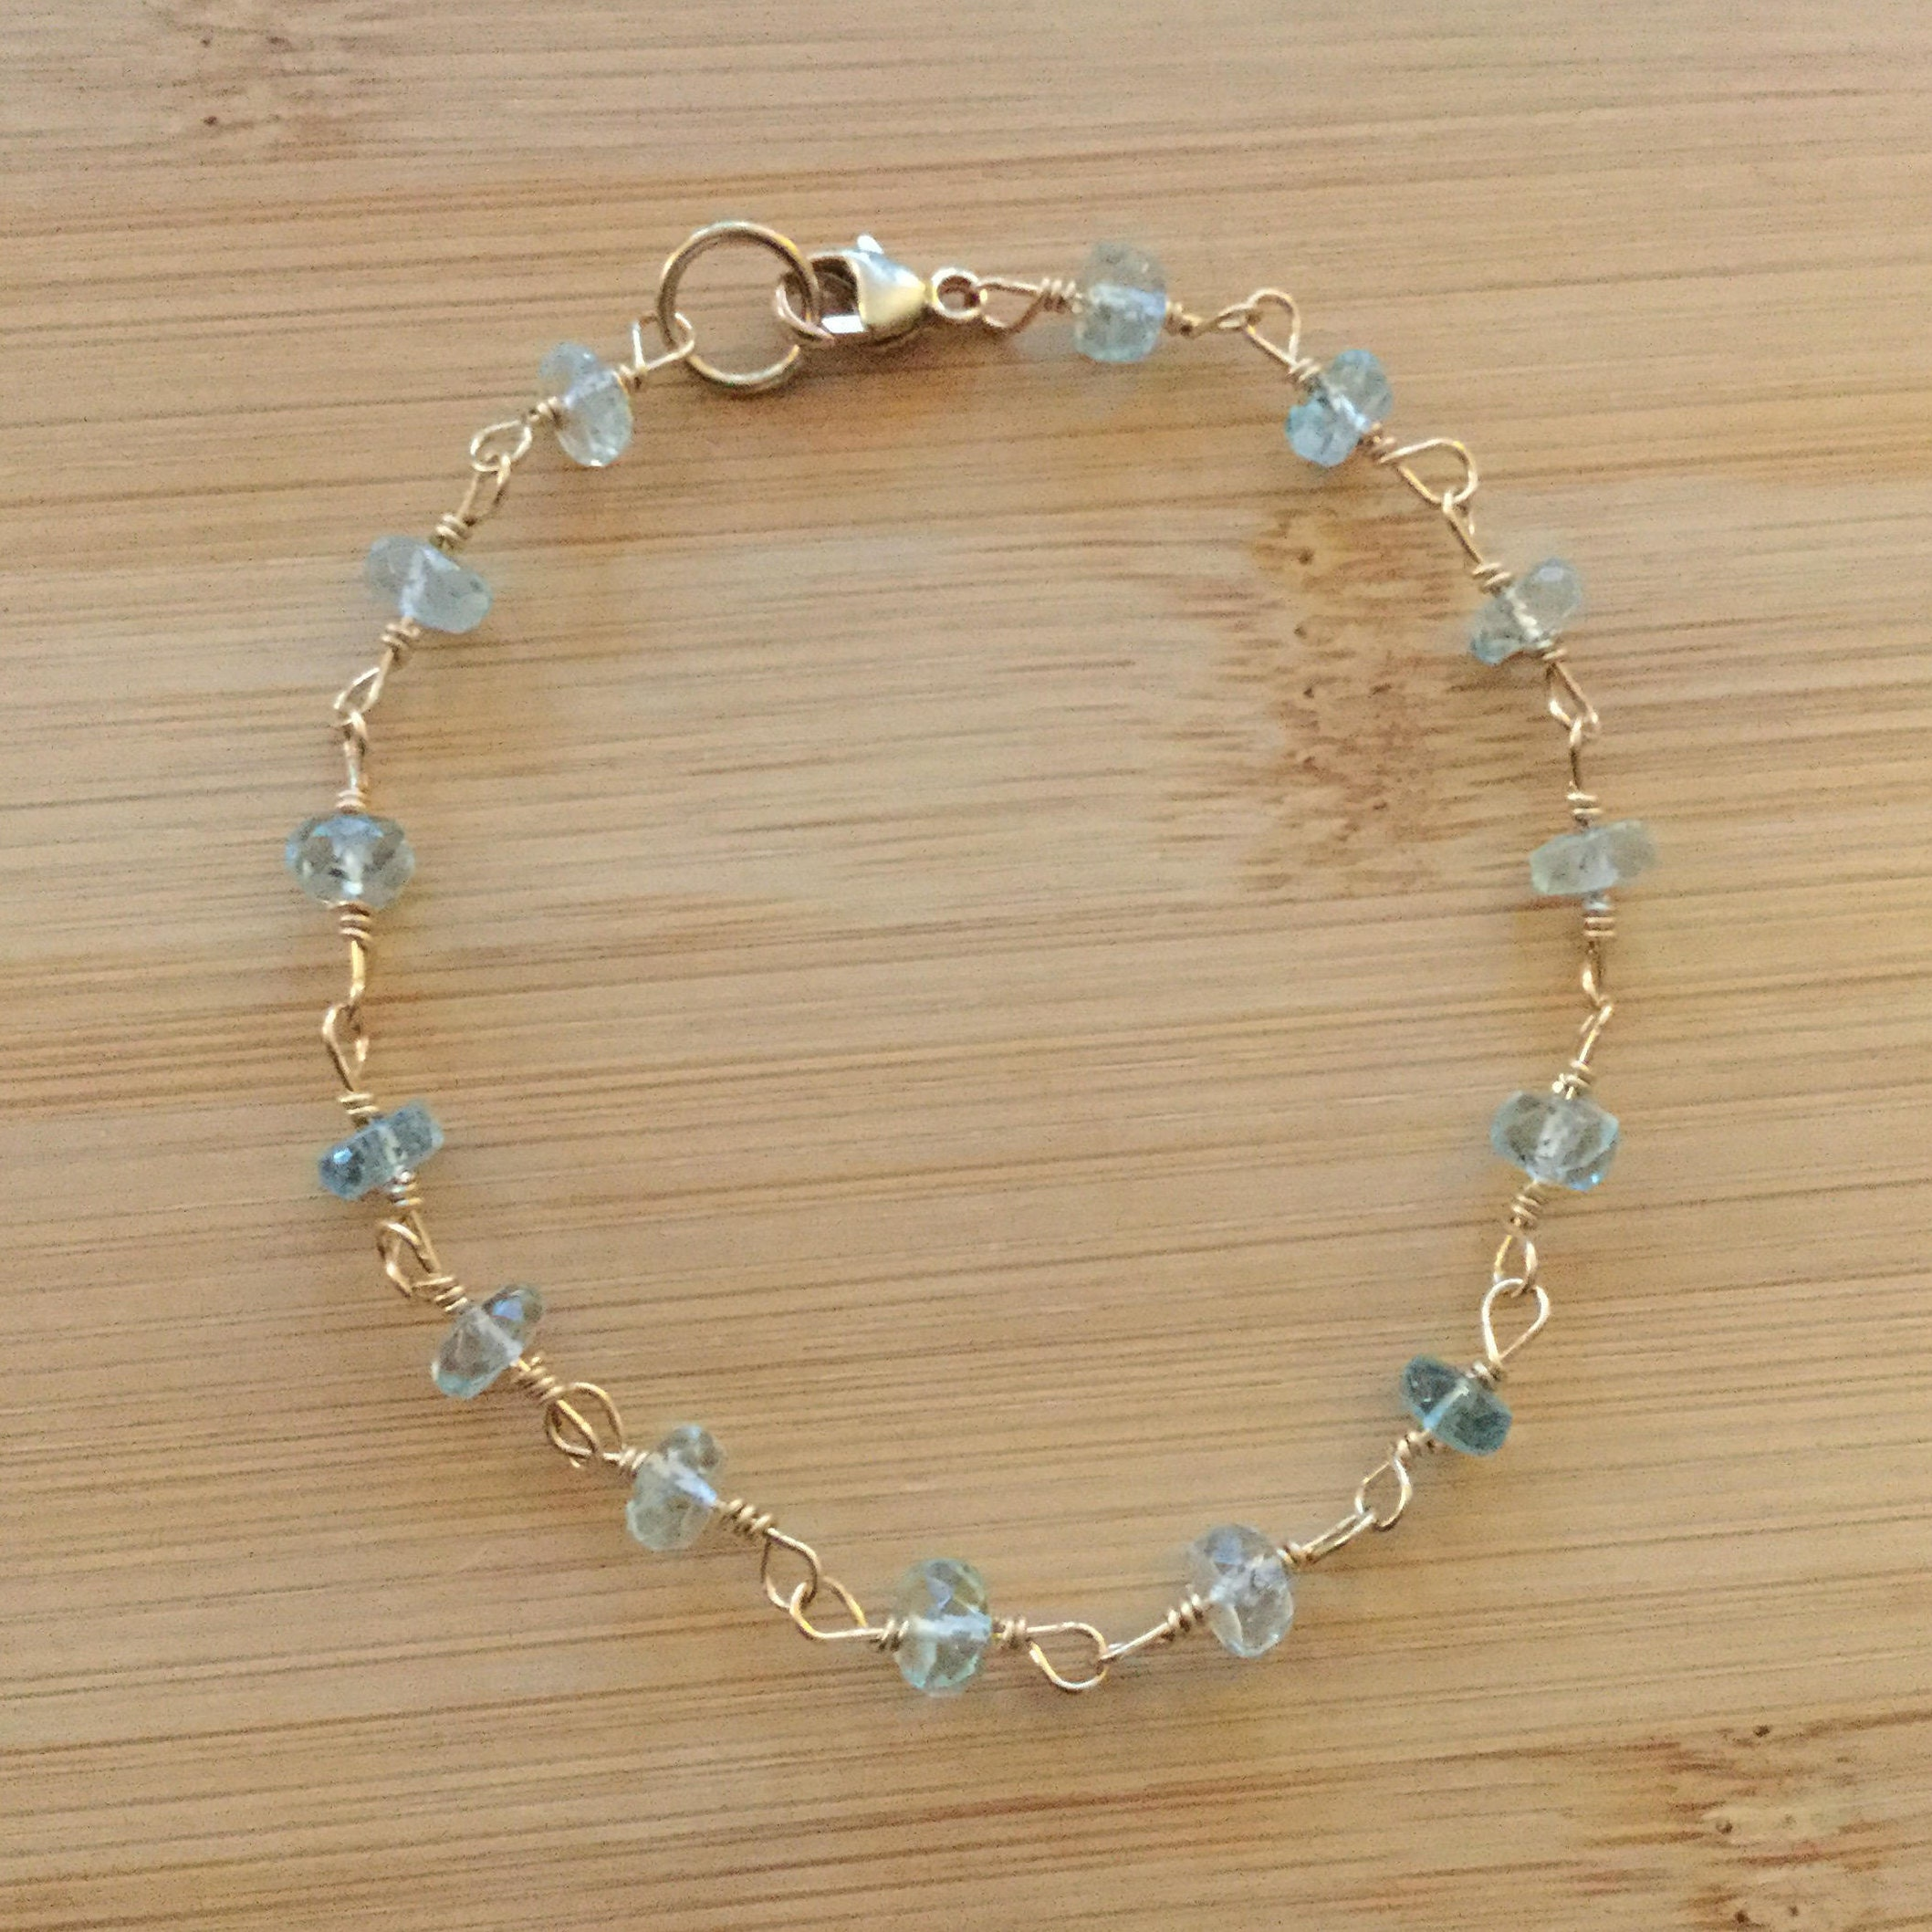 il healing march fullxfull birthstone bracelet listing shipping aquamarine natural